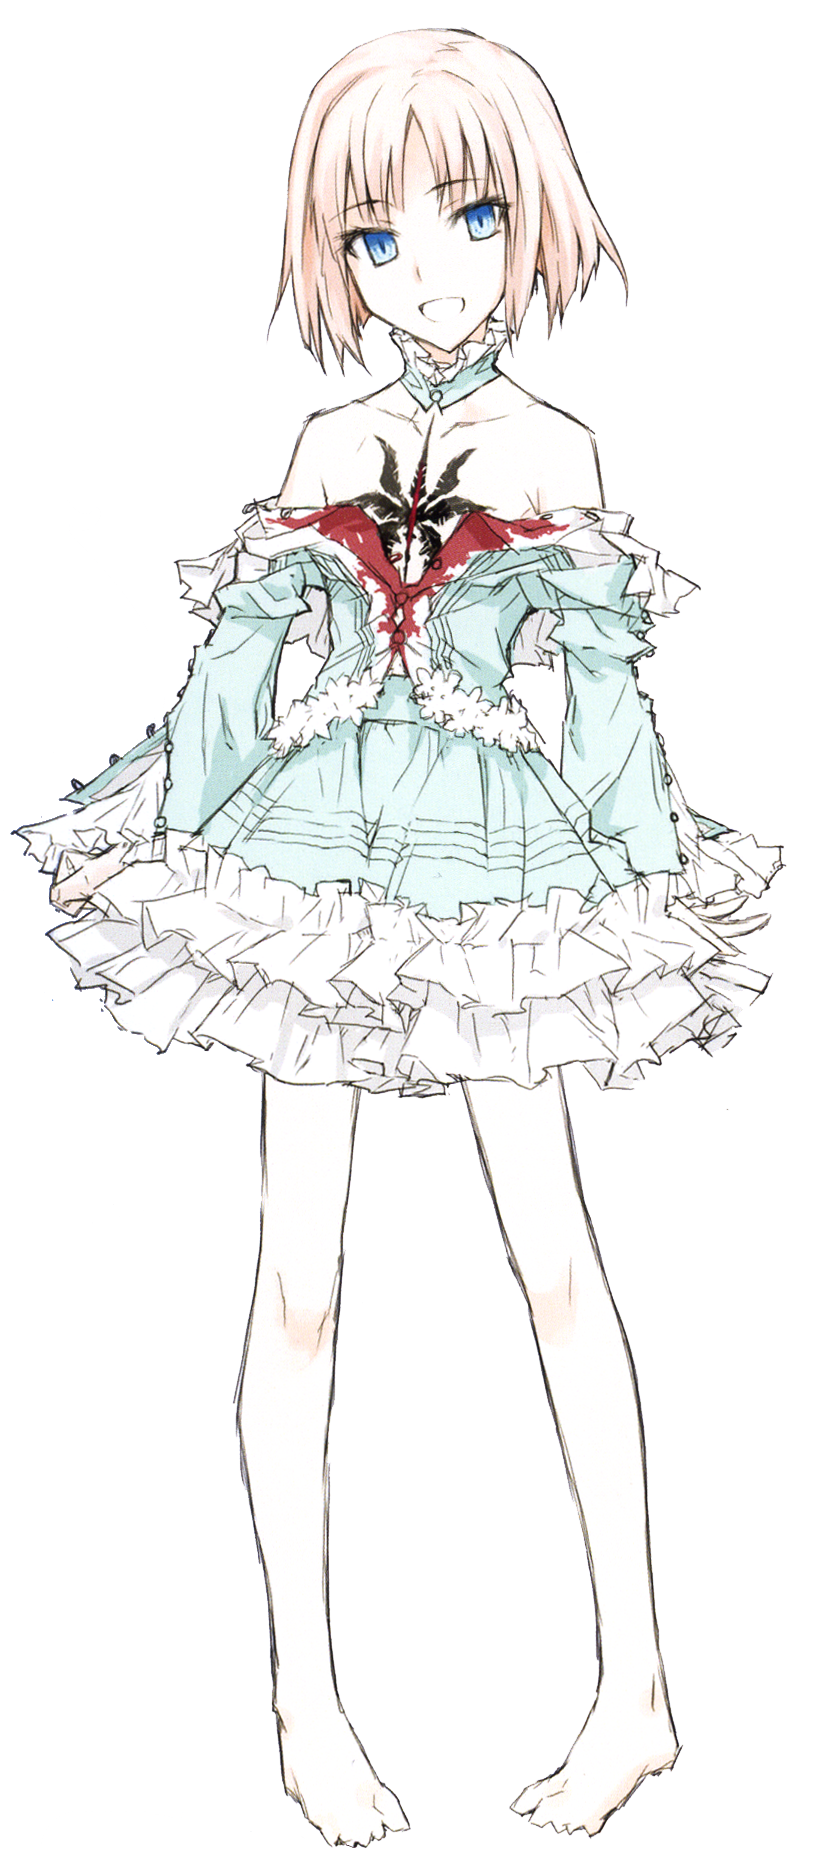 Manaka sajyou type moon wiki fandom powered by wikia for Best of the best wiki